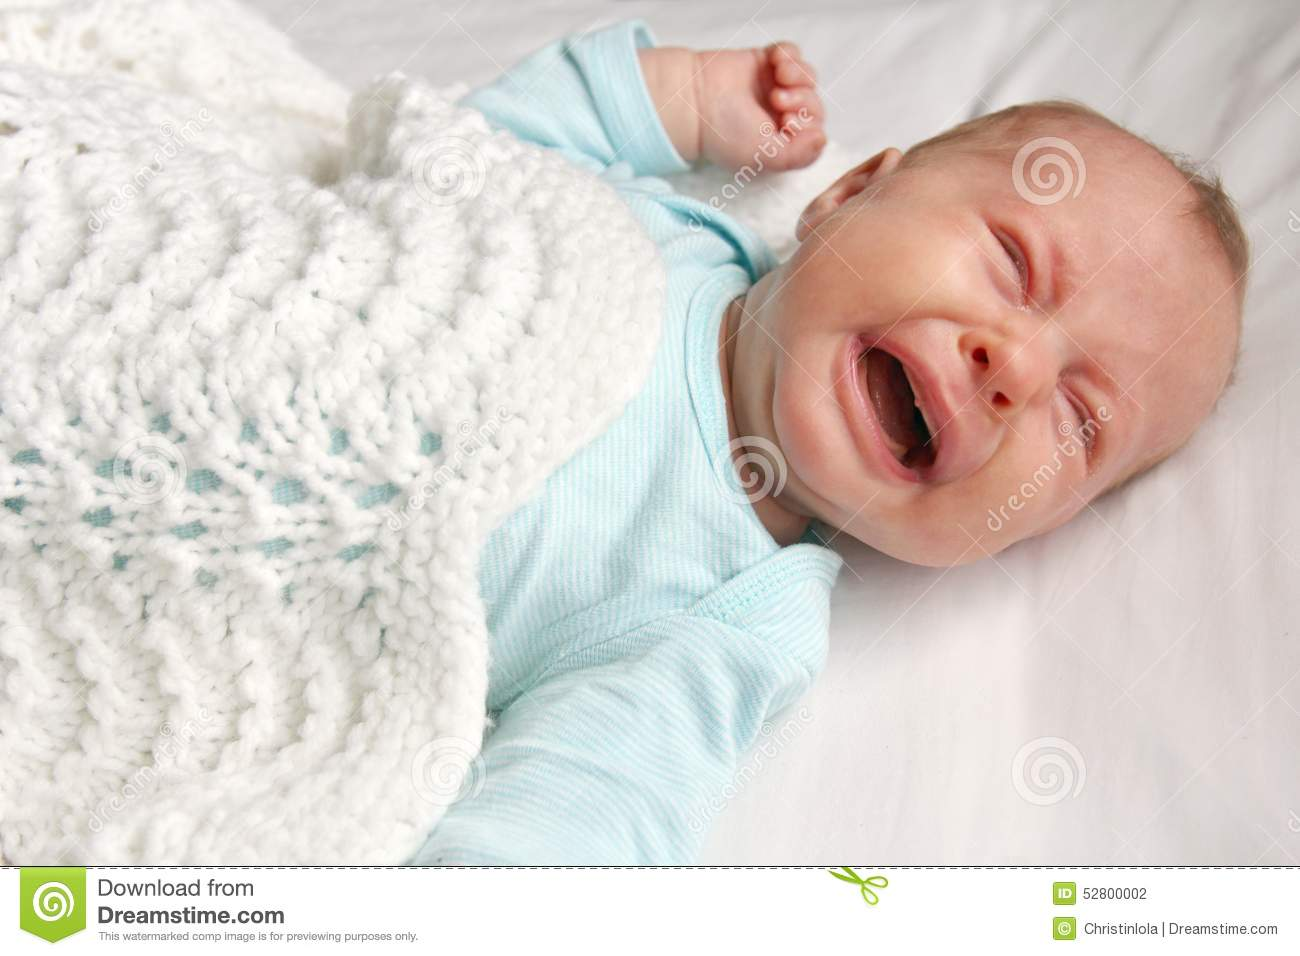 A cute one month old newborn baby is laying on her back in the crib crying